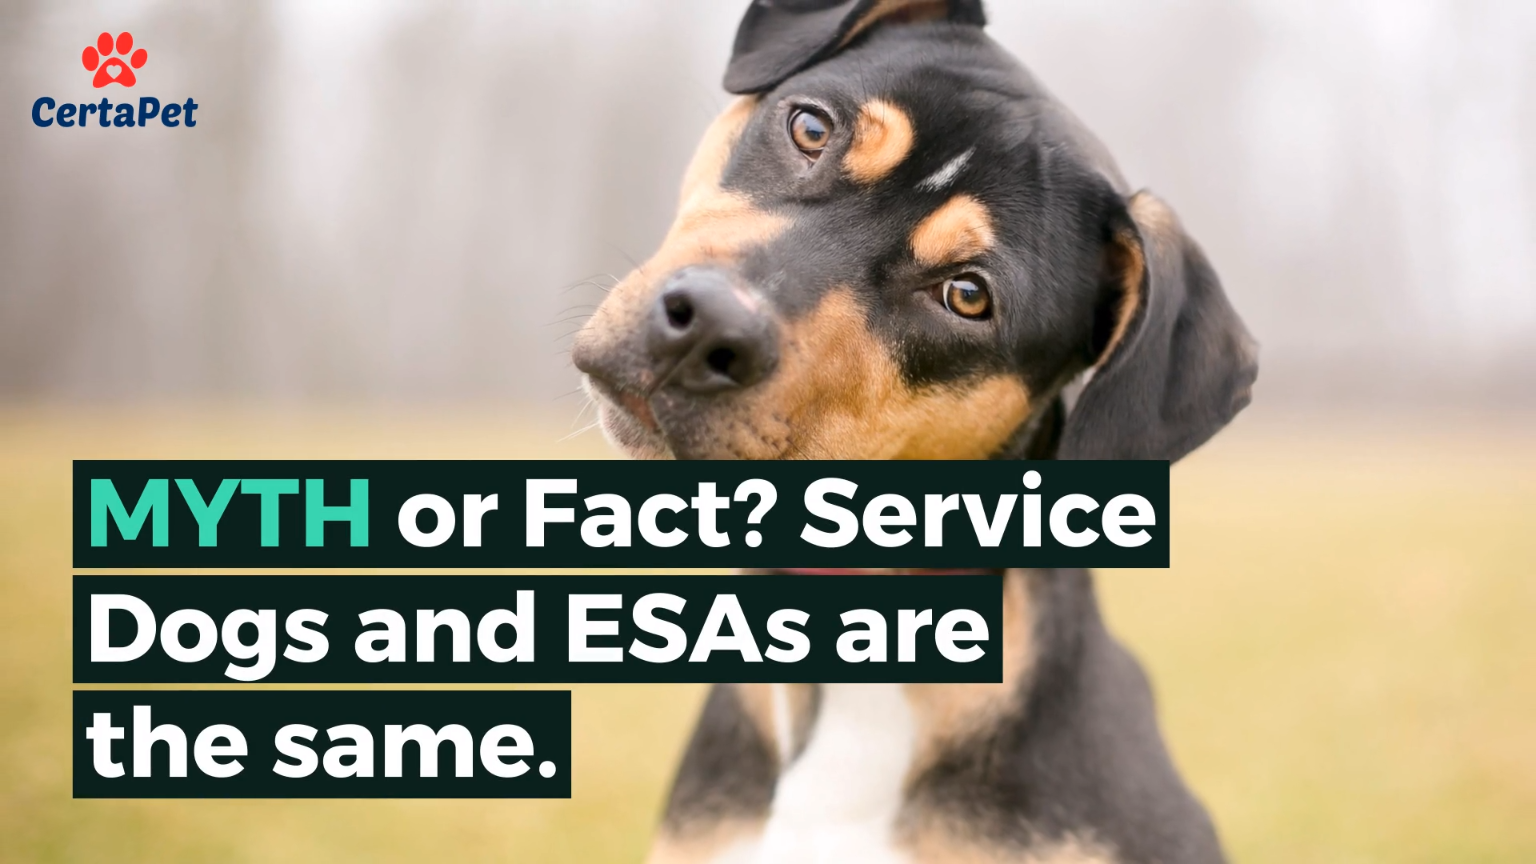 Image of: Landlord Watch This Video To Learn More About Emotional Support Animals Or Visit Us On Our Website certapet Dogtime Did You Know Service Dogs And Esas Are Not The Same Both Fulfill